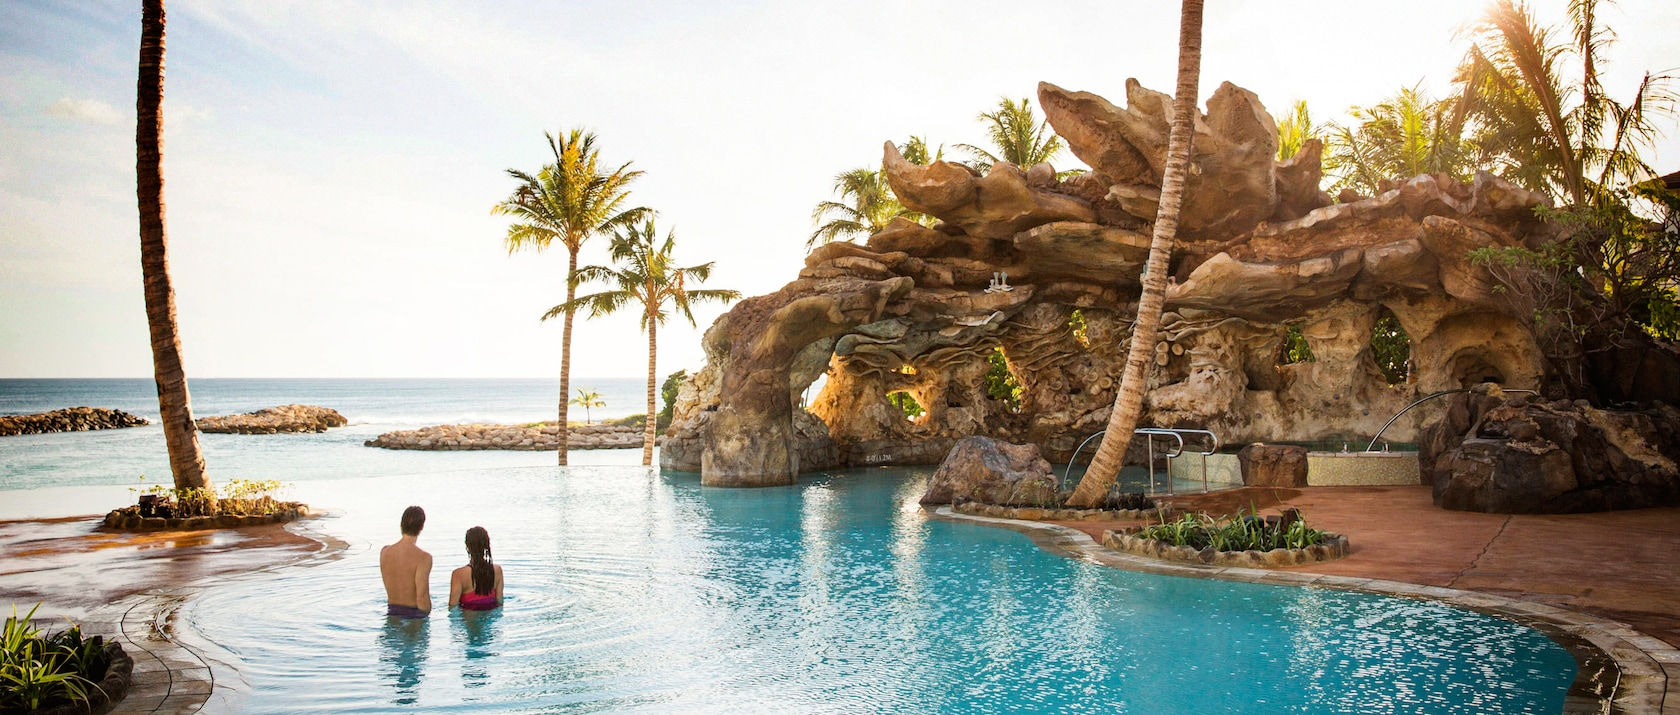 A couple relaxes in the waters of the Ka Maka Grotto oceanfront pool while looking out to the ocean